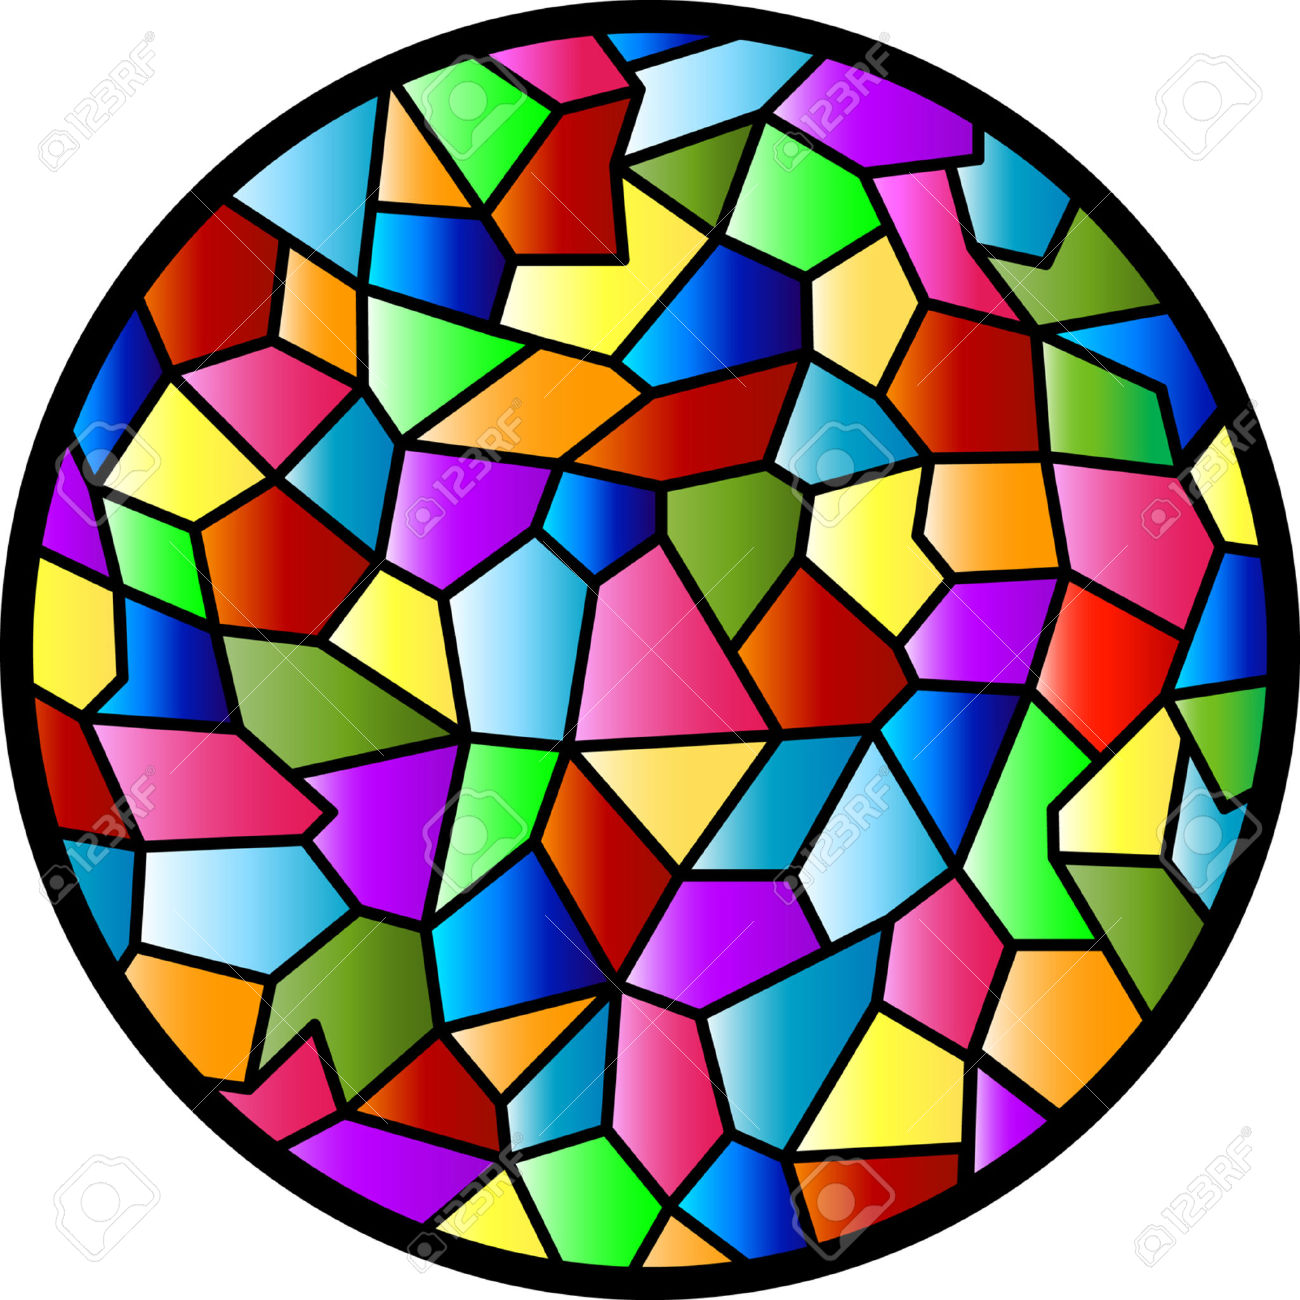 Stained Glass Clipart Church Window | Clipart Panda - Free